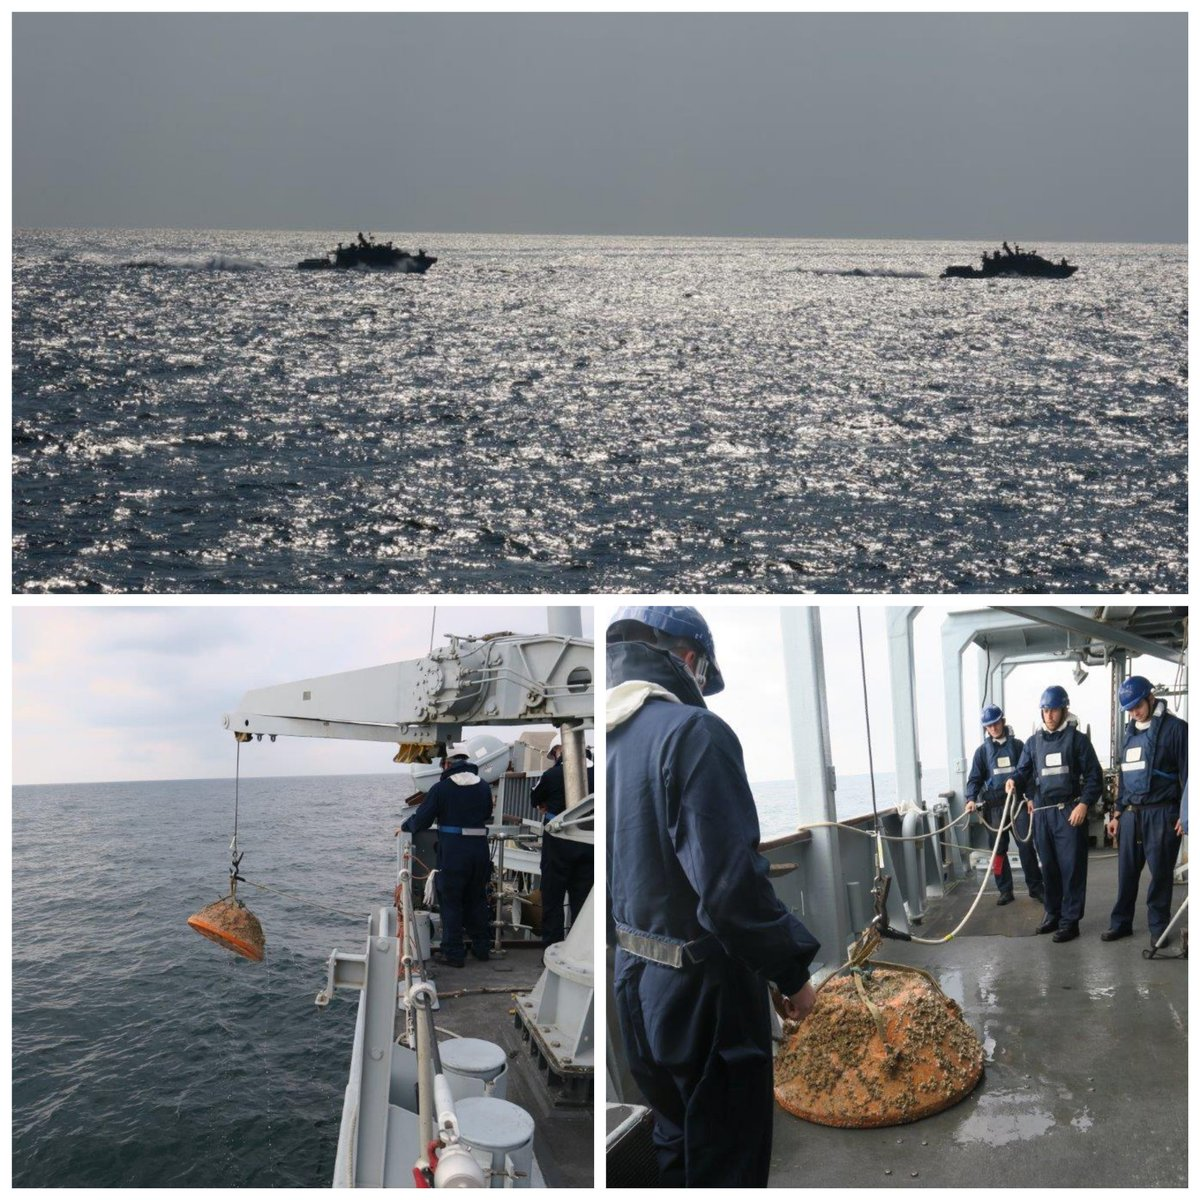 #FightingAces recently took part in a major exercise with @HMSShoreham and @USNavy, ensuring our continuous ability to protect vital shipping lanes. Practice mines were detected by autonomous vessels and helicopters, and 'neutralised' with our mine disposal system #Continuous15